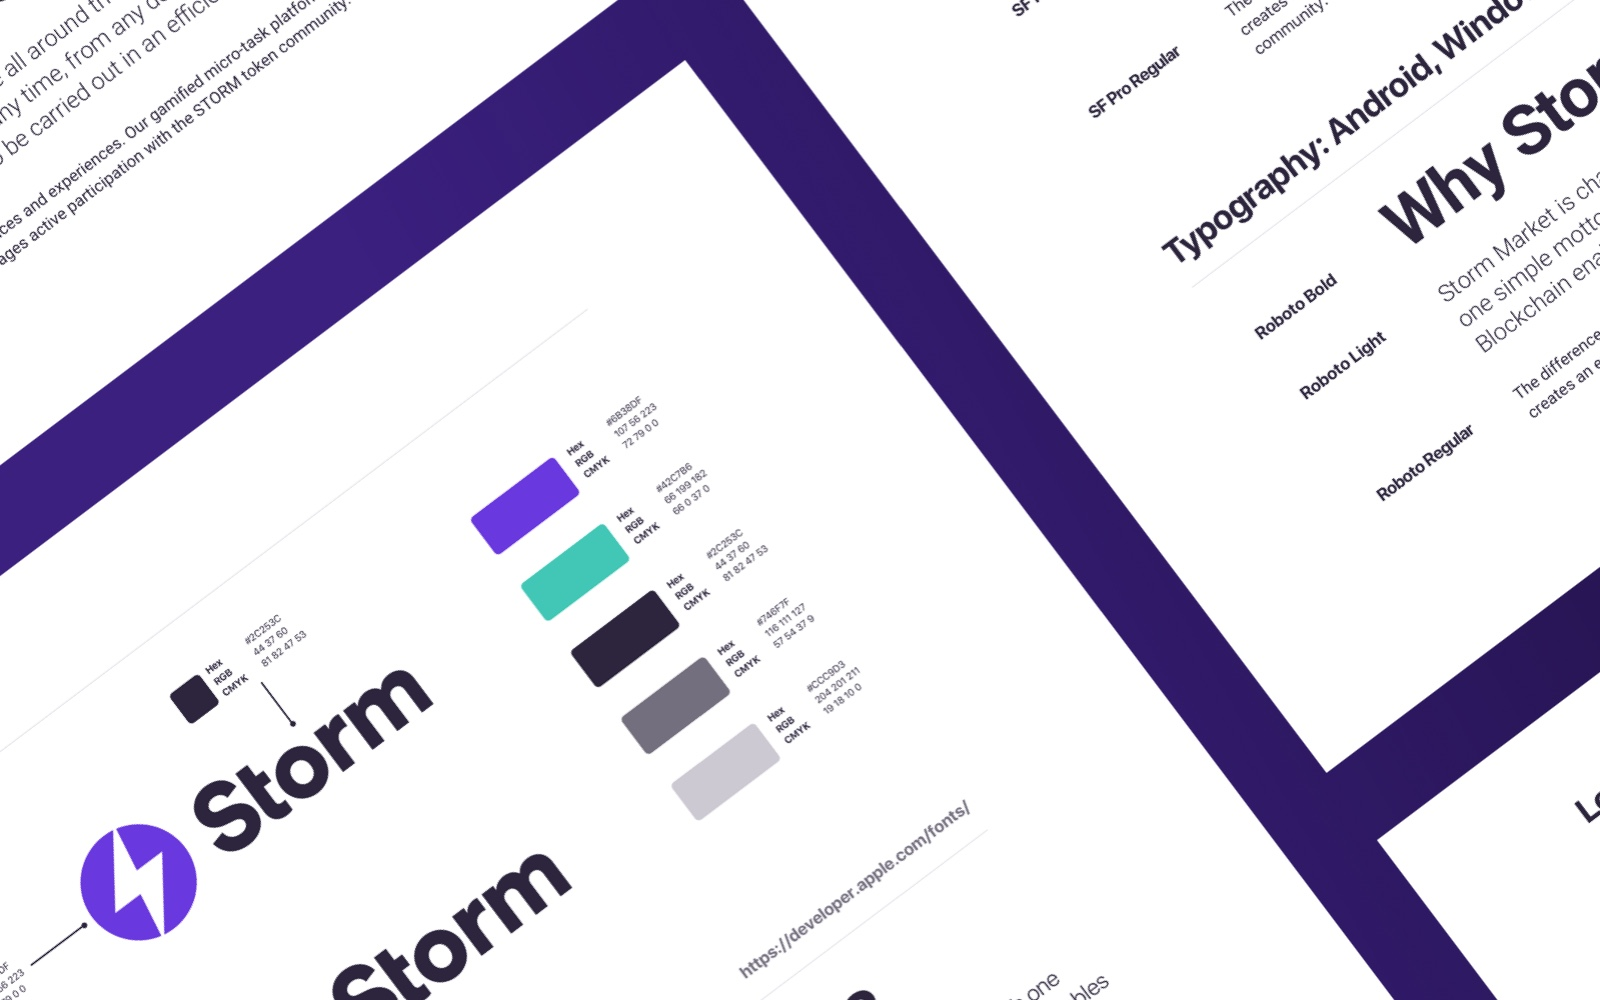 Storm brand guidelines